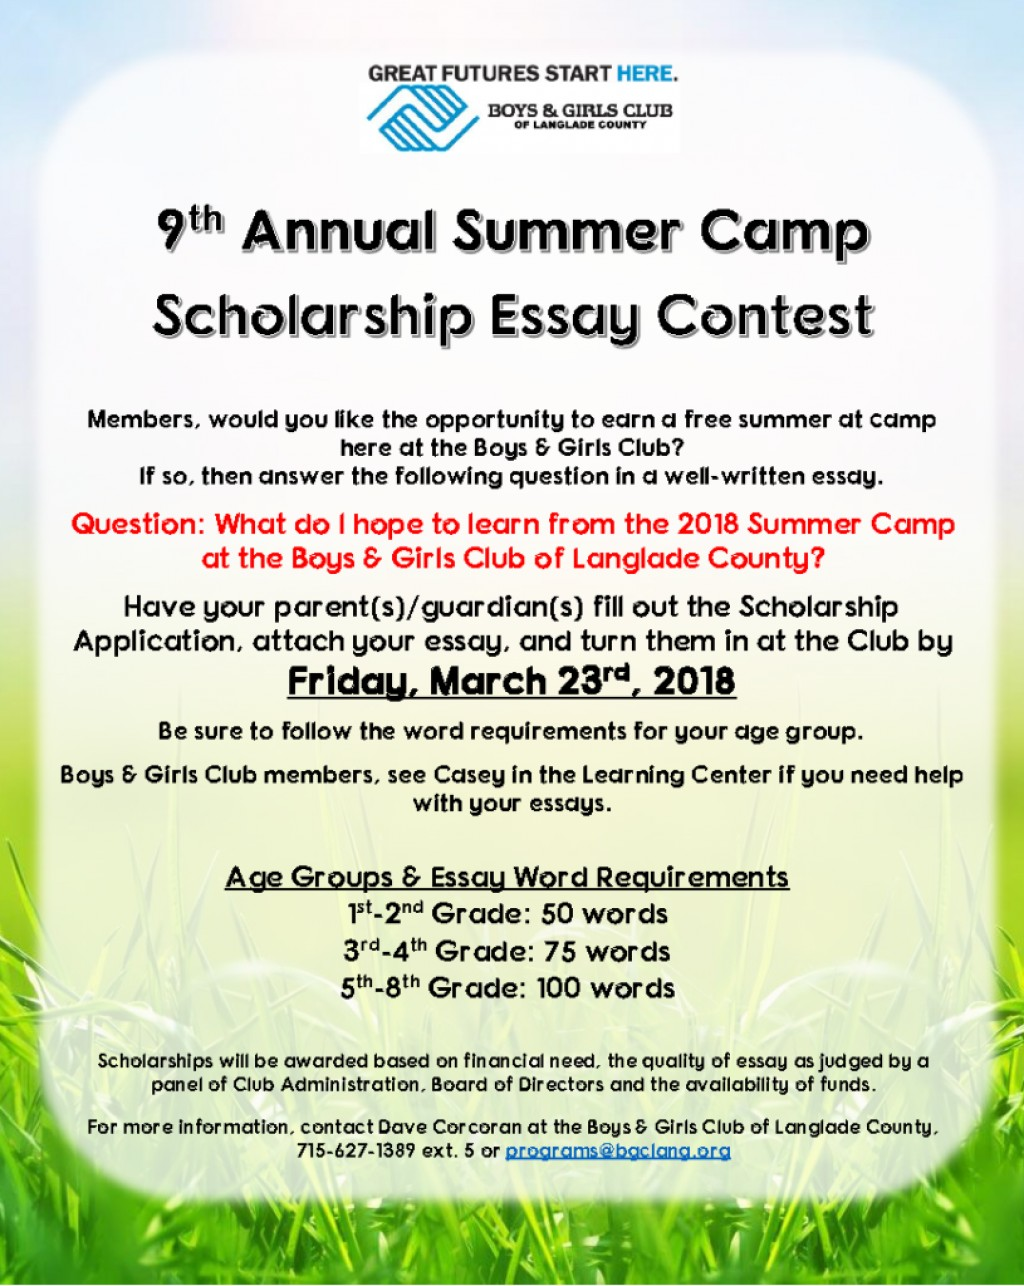 009 Essay Contest 815x1024 Scholarship Astounding Contests For High School Students 2019 Middle Large